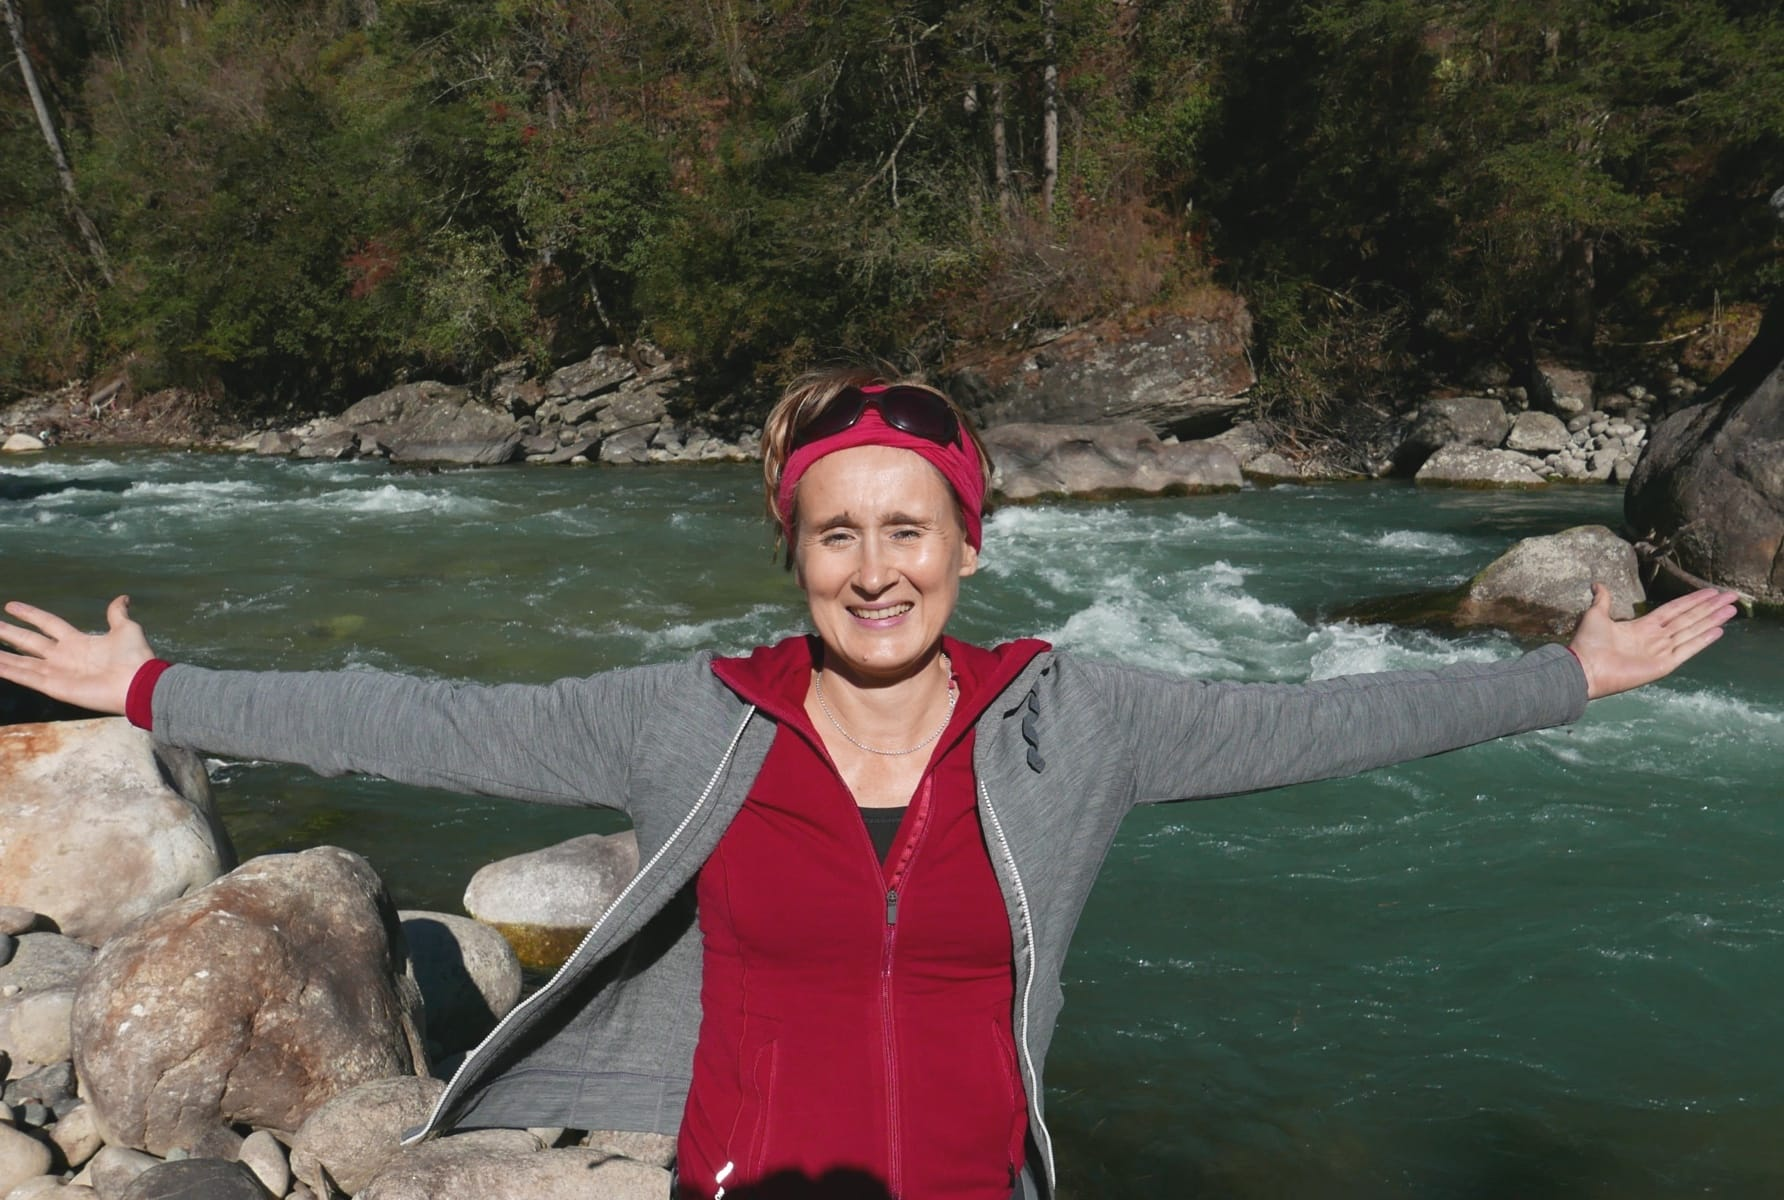 A European woman in red and grey outdoor dress pose in front of the torrential flow of a turquoise colored river. She is spreading her arms to both sides in clear posure of Happiness.